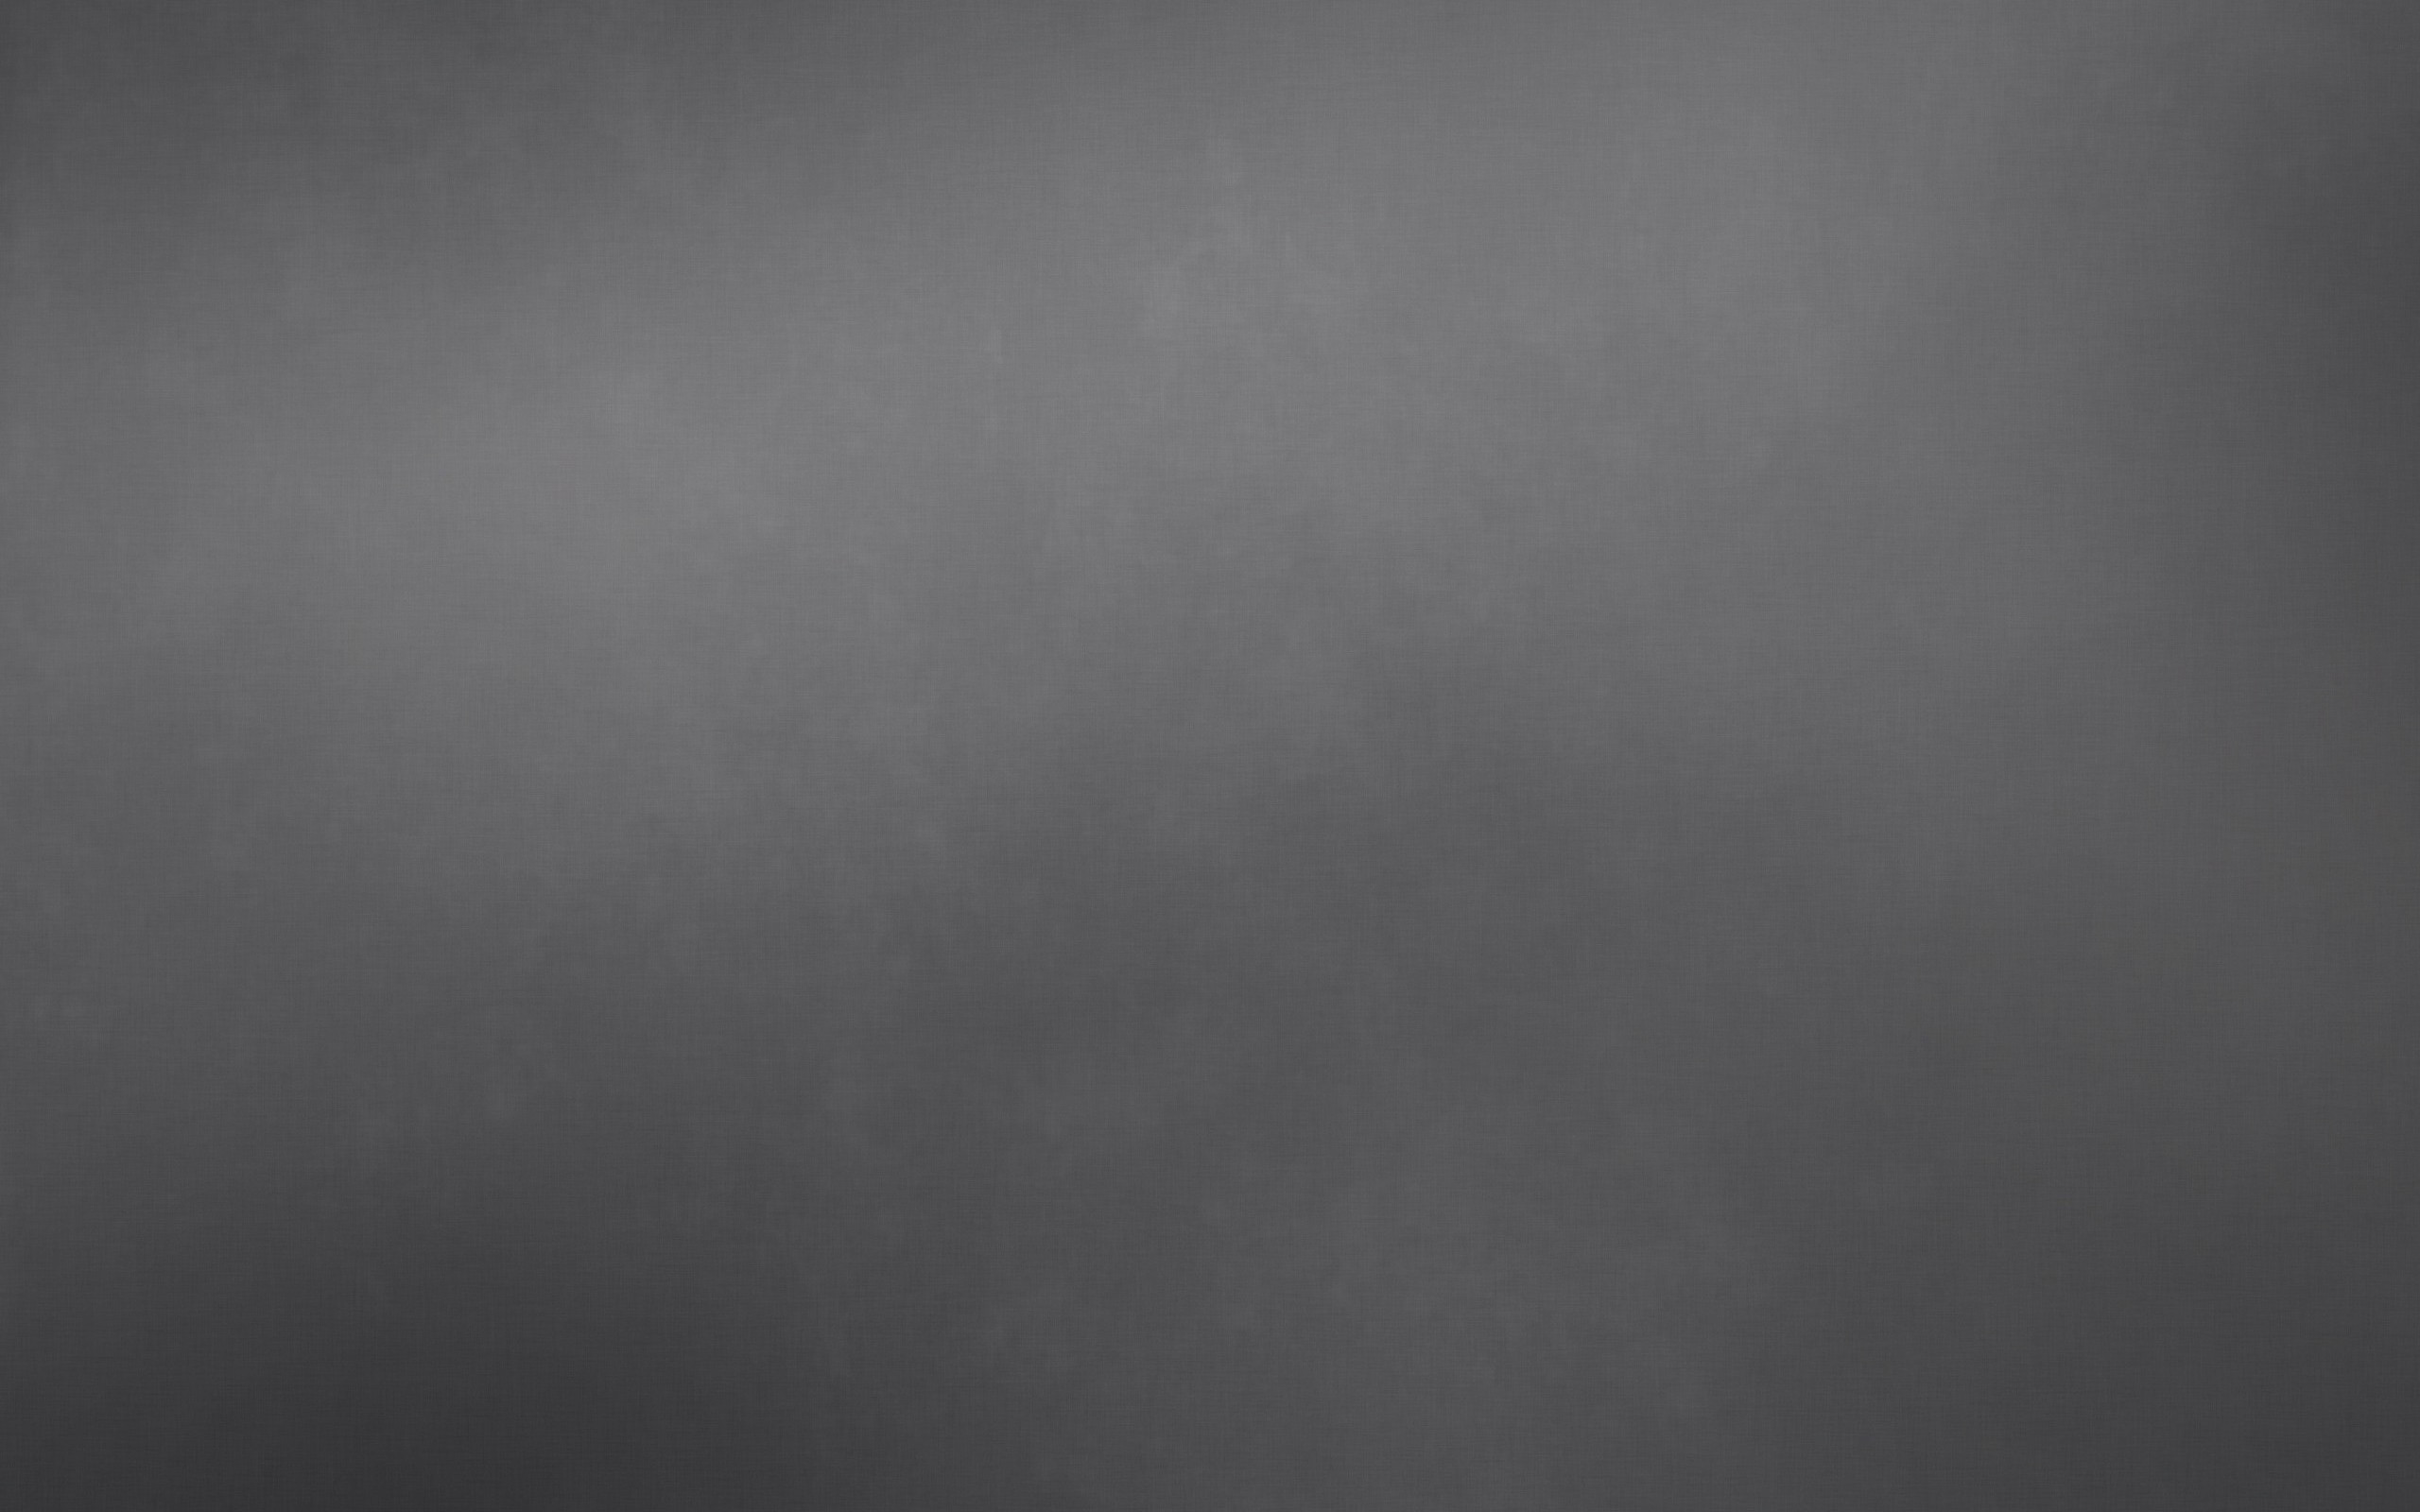 abstract gray simple background